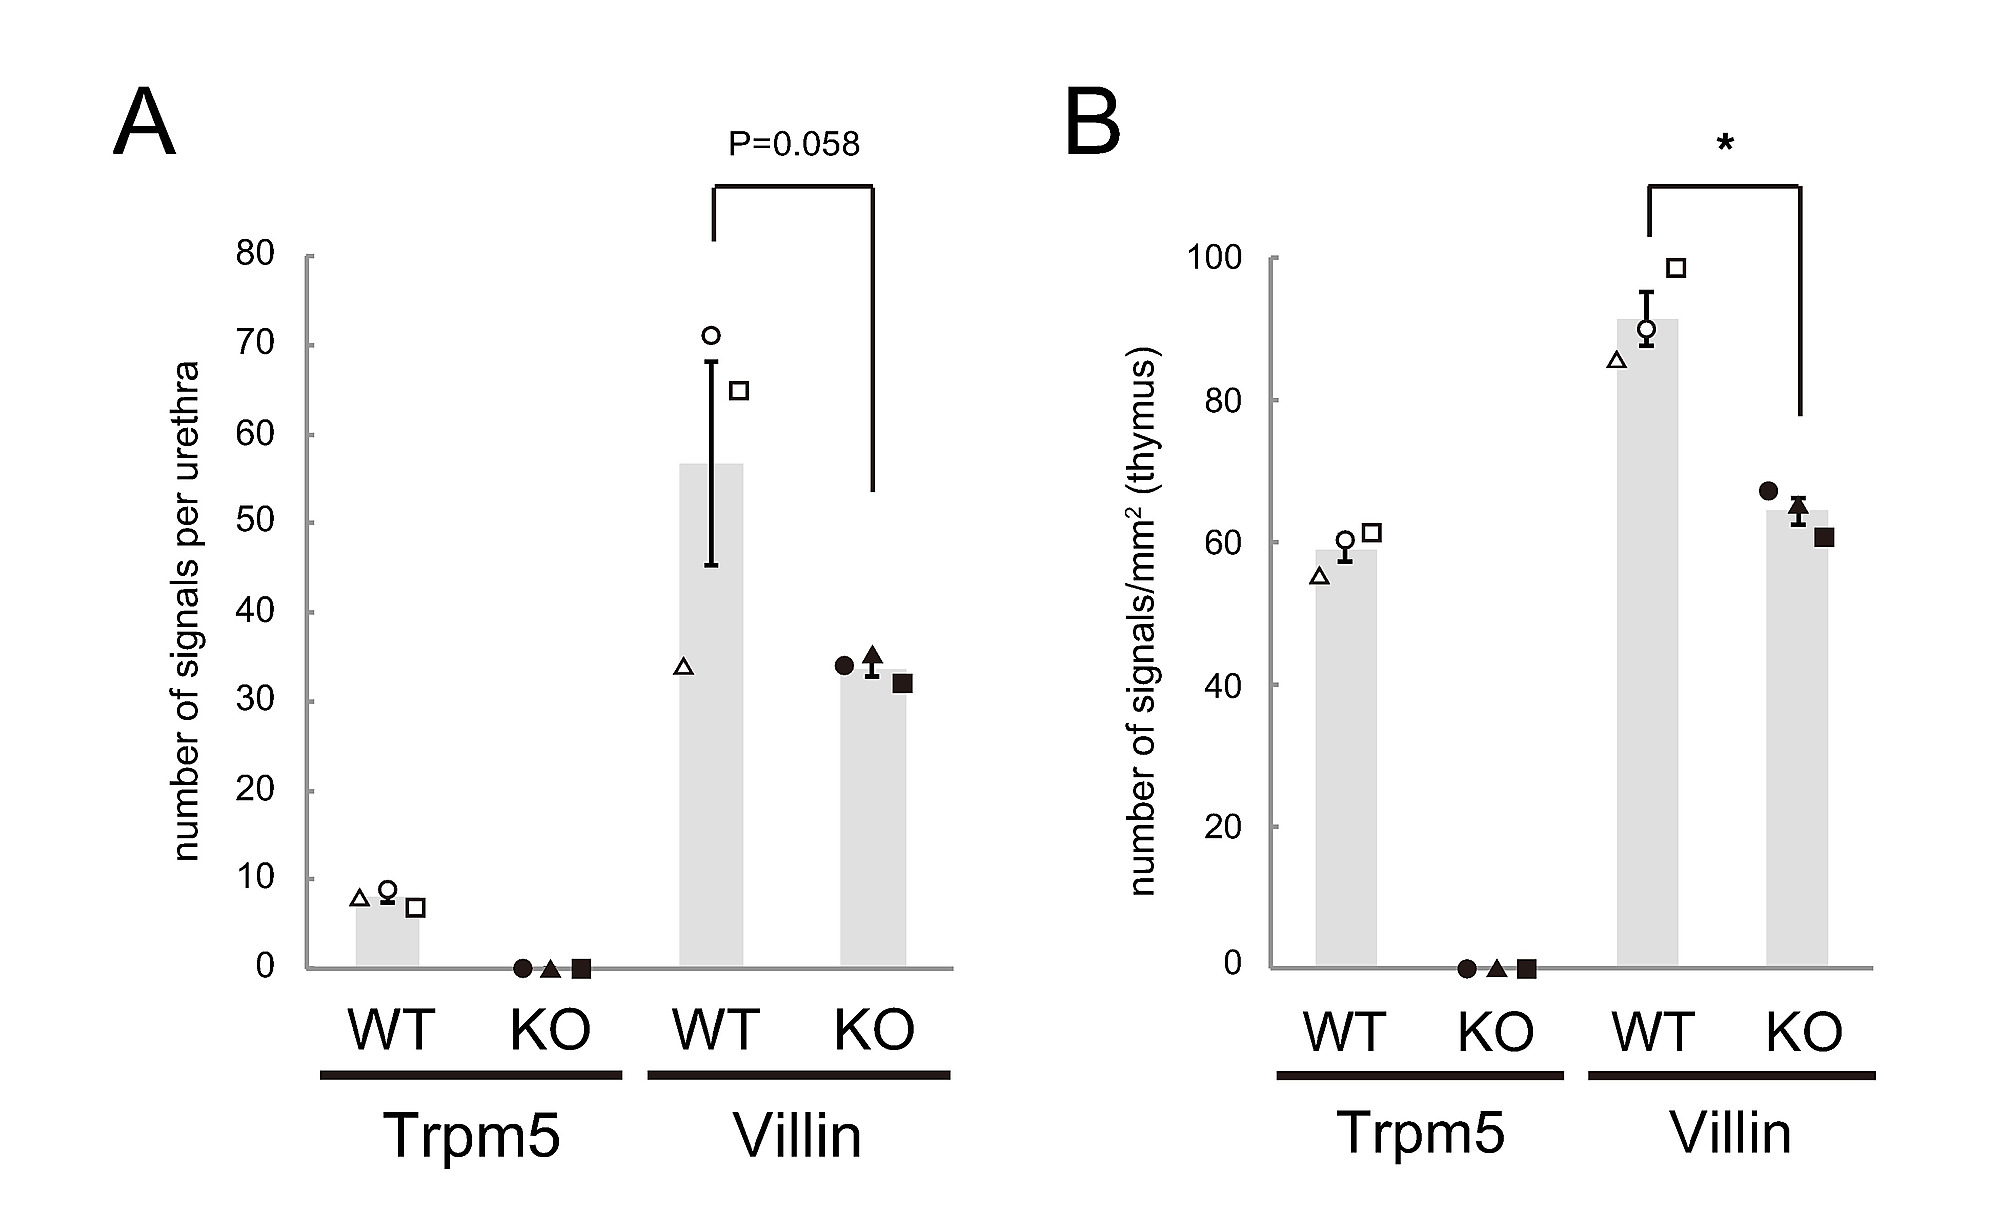 Skn-1a/Pou2f3 functions as a master regulator to generate Trpm5 ...